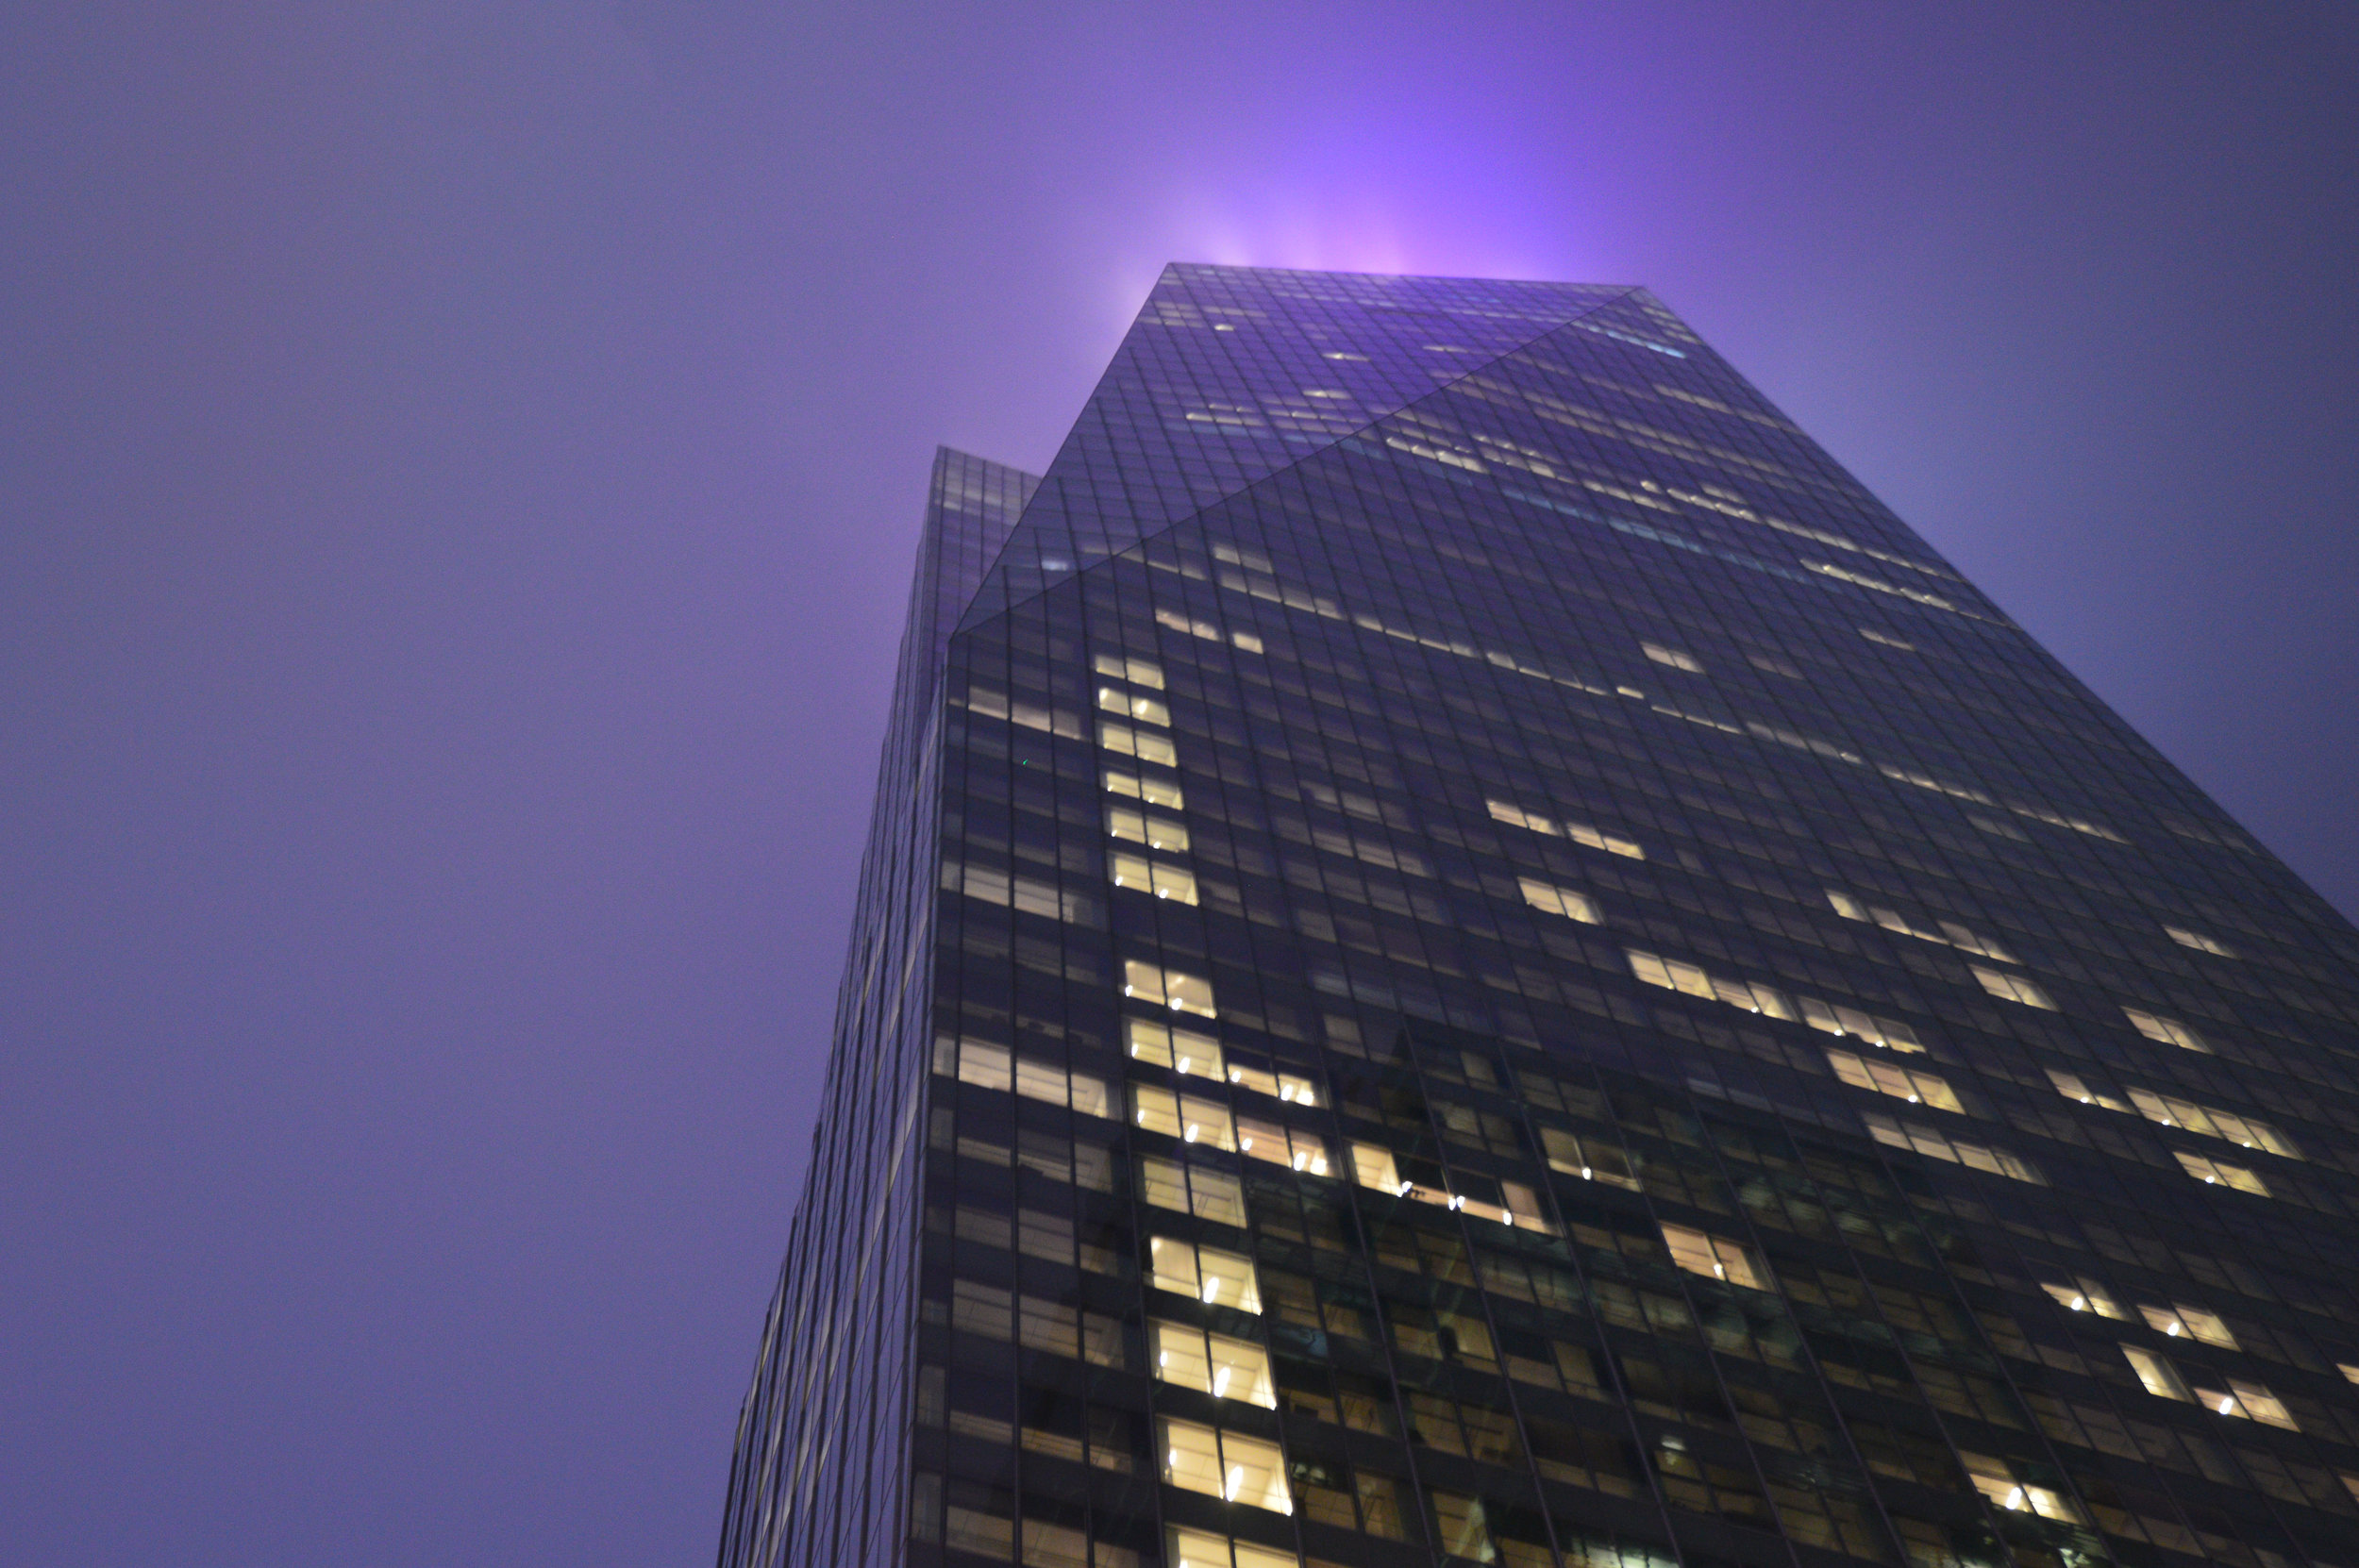 """""""In the Purple""""  Manhatten, NY Minor photo edit (no color change) June 2017"""